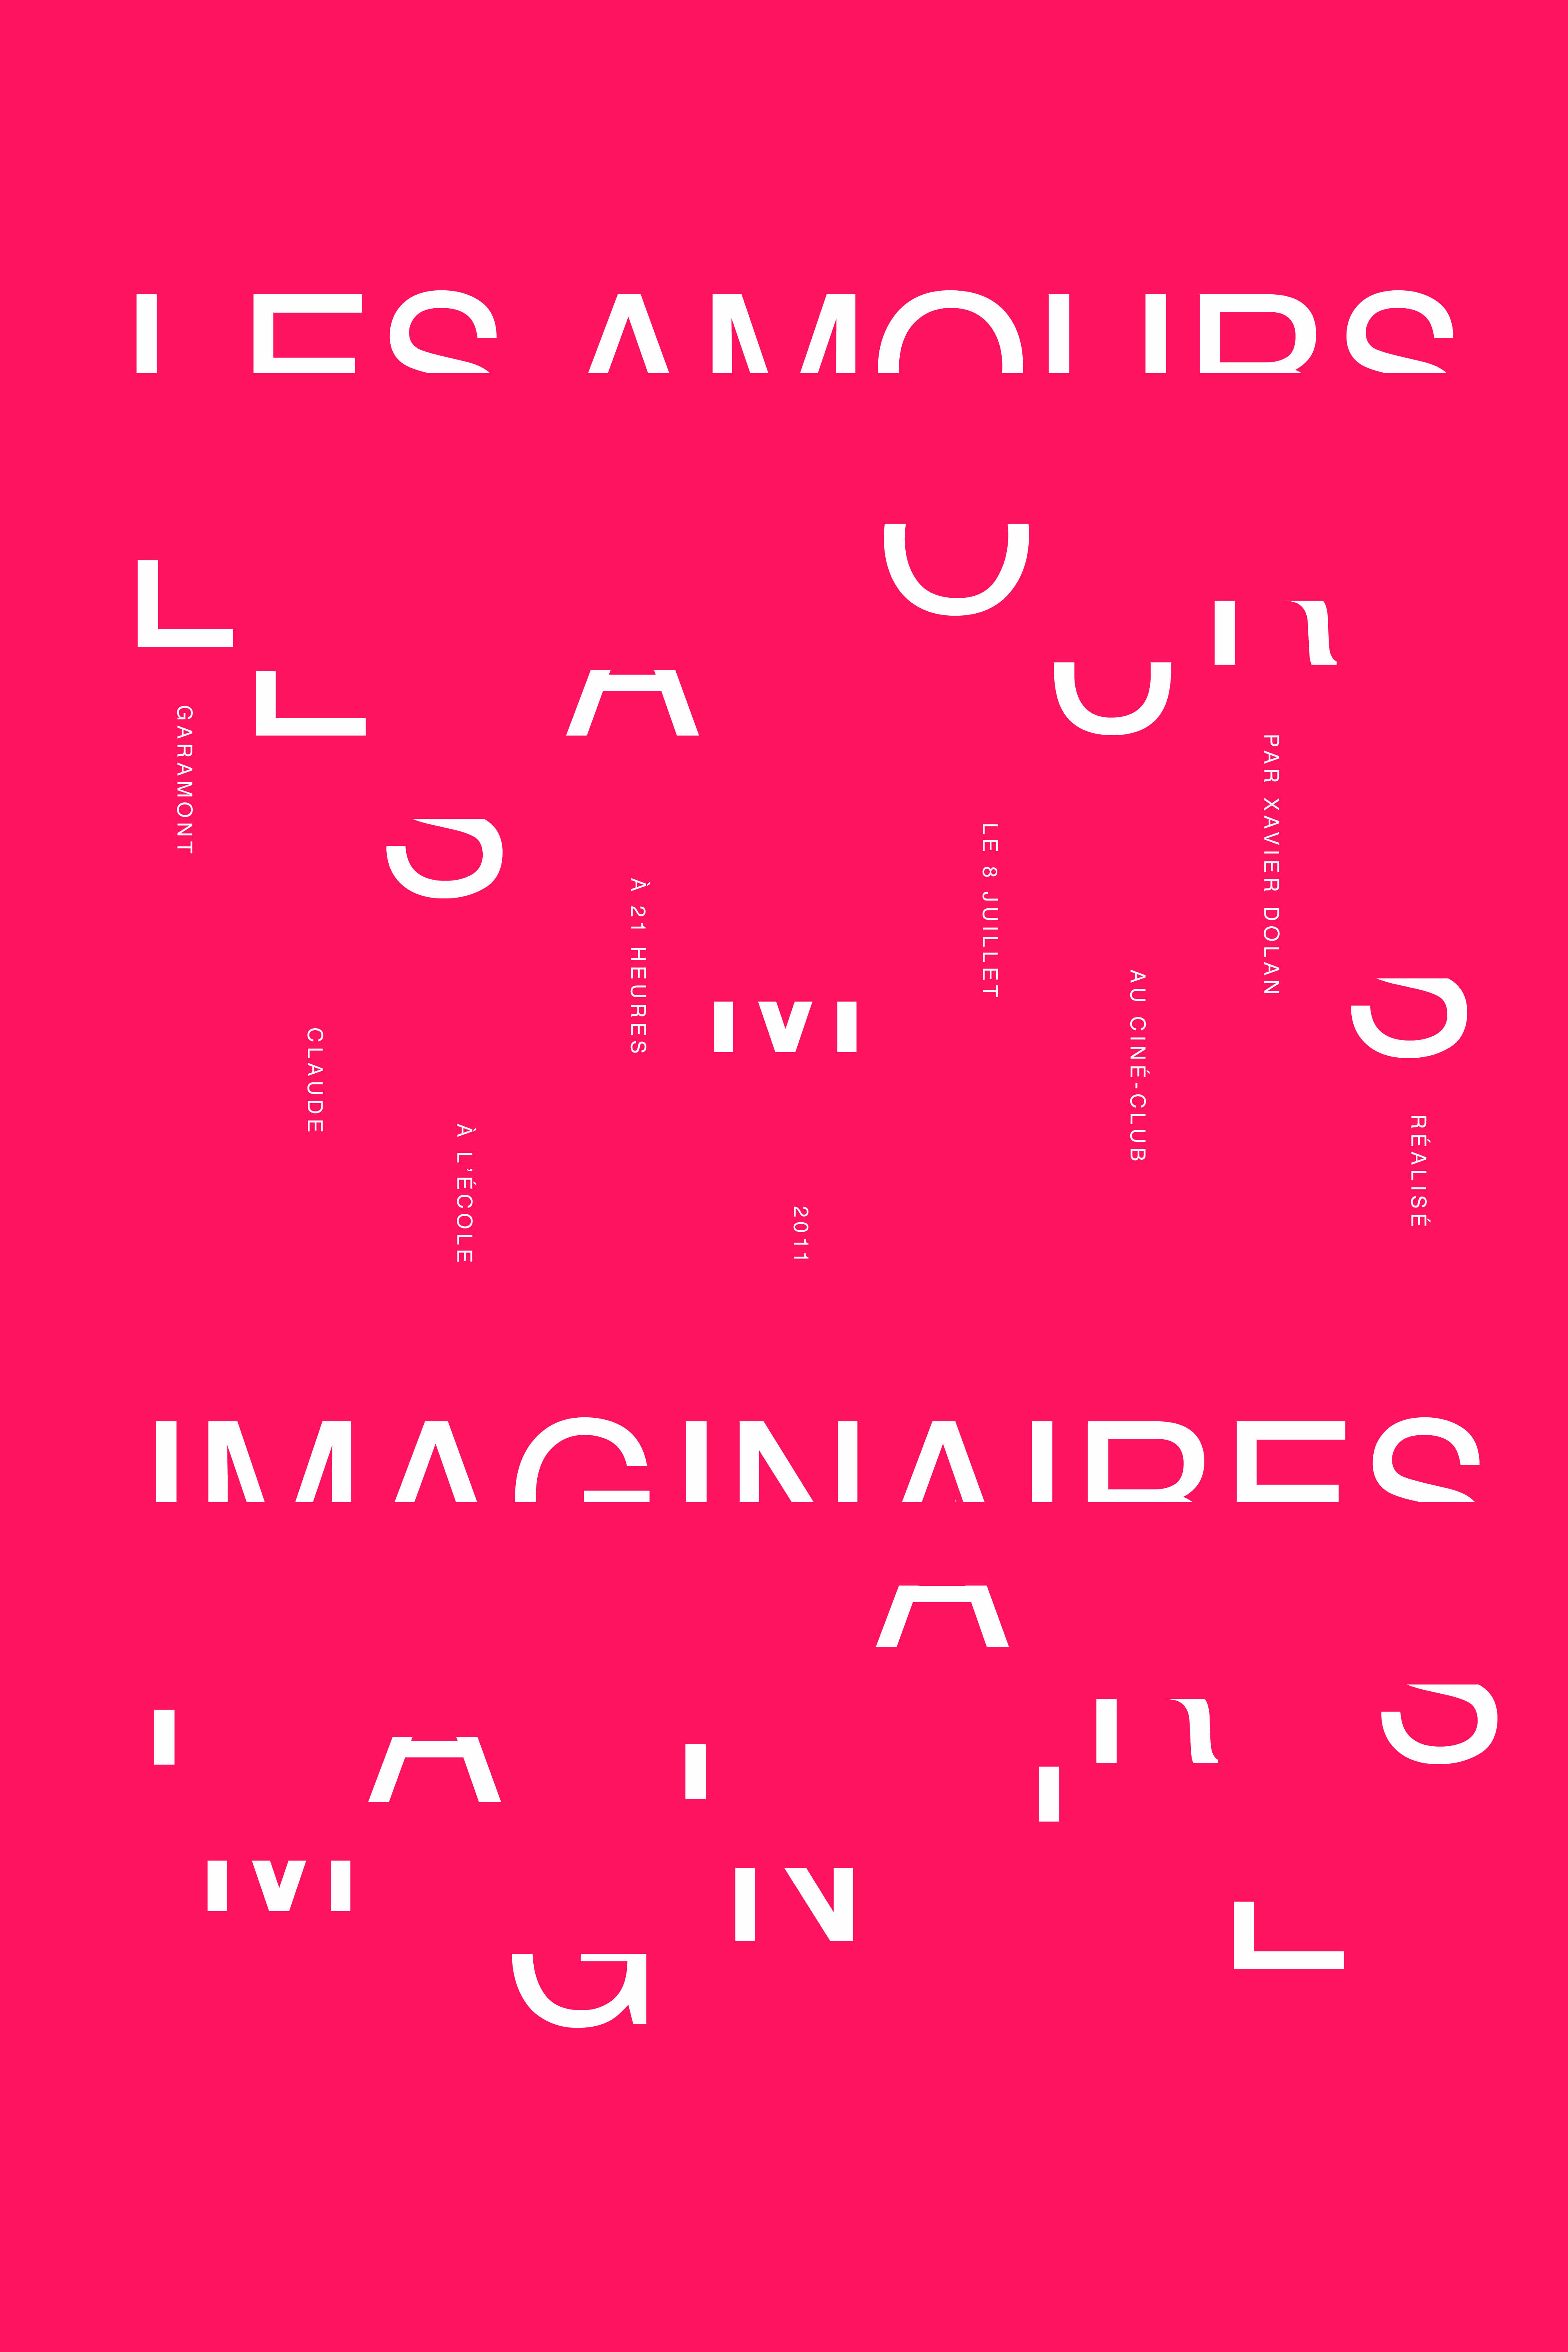 Les Amours Imaginaires by Xavier Dolan   poster by Sarah Savoyen-Glass